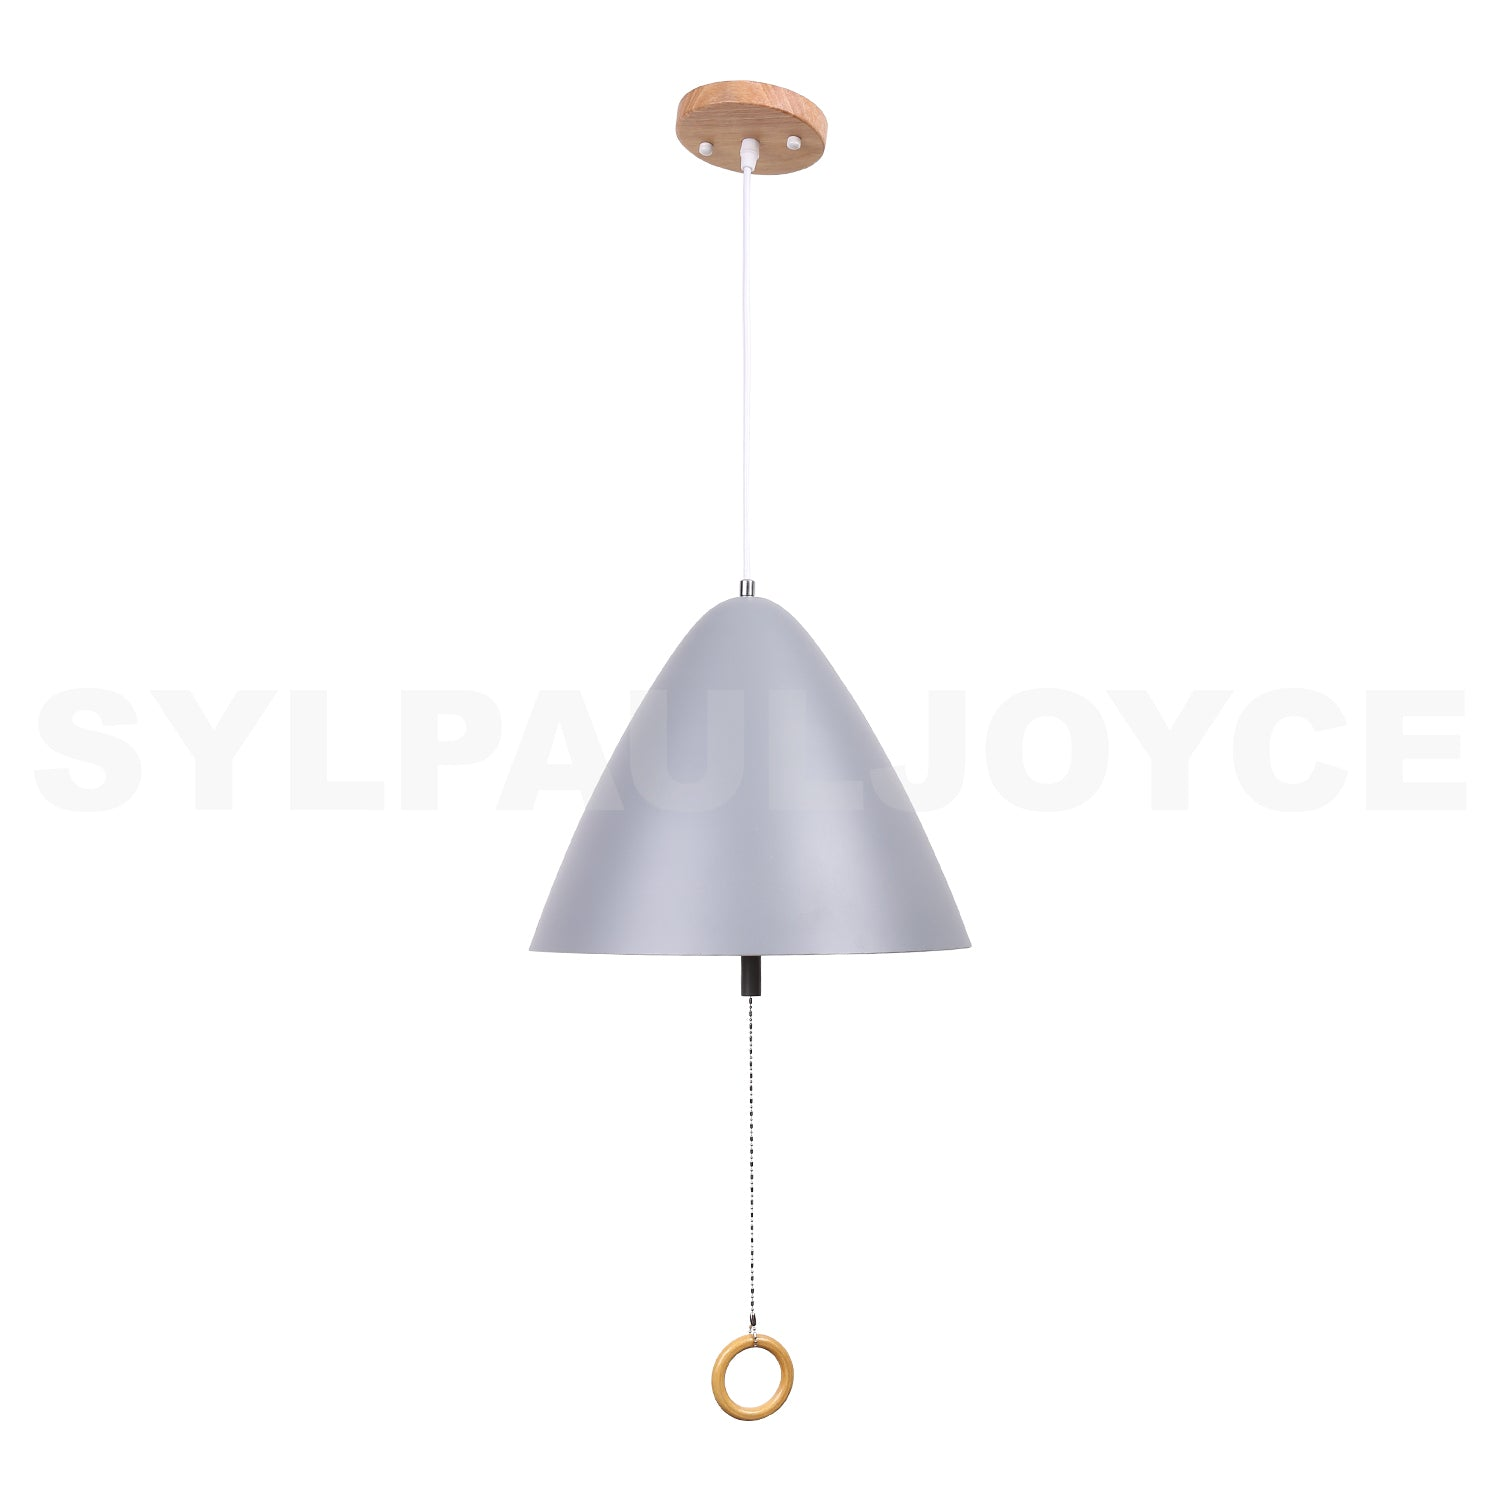 7002-330 Drop Light - Sylpauljoyce Furniture, Lights & Decor